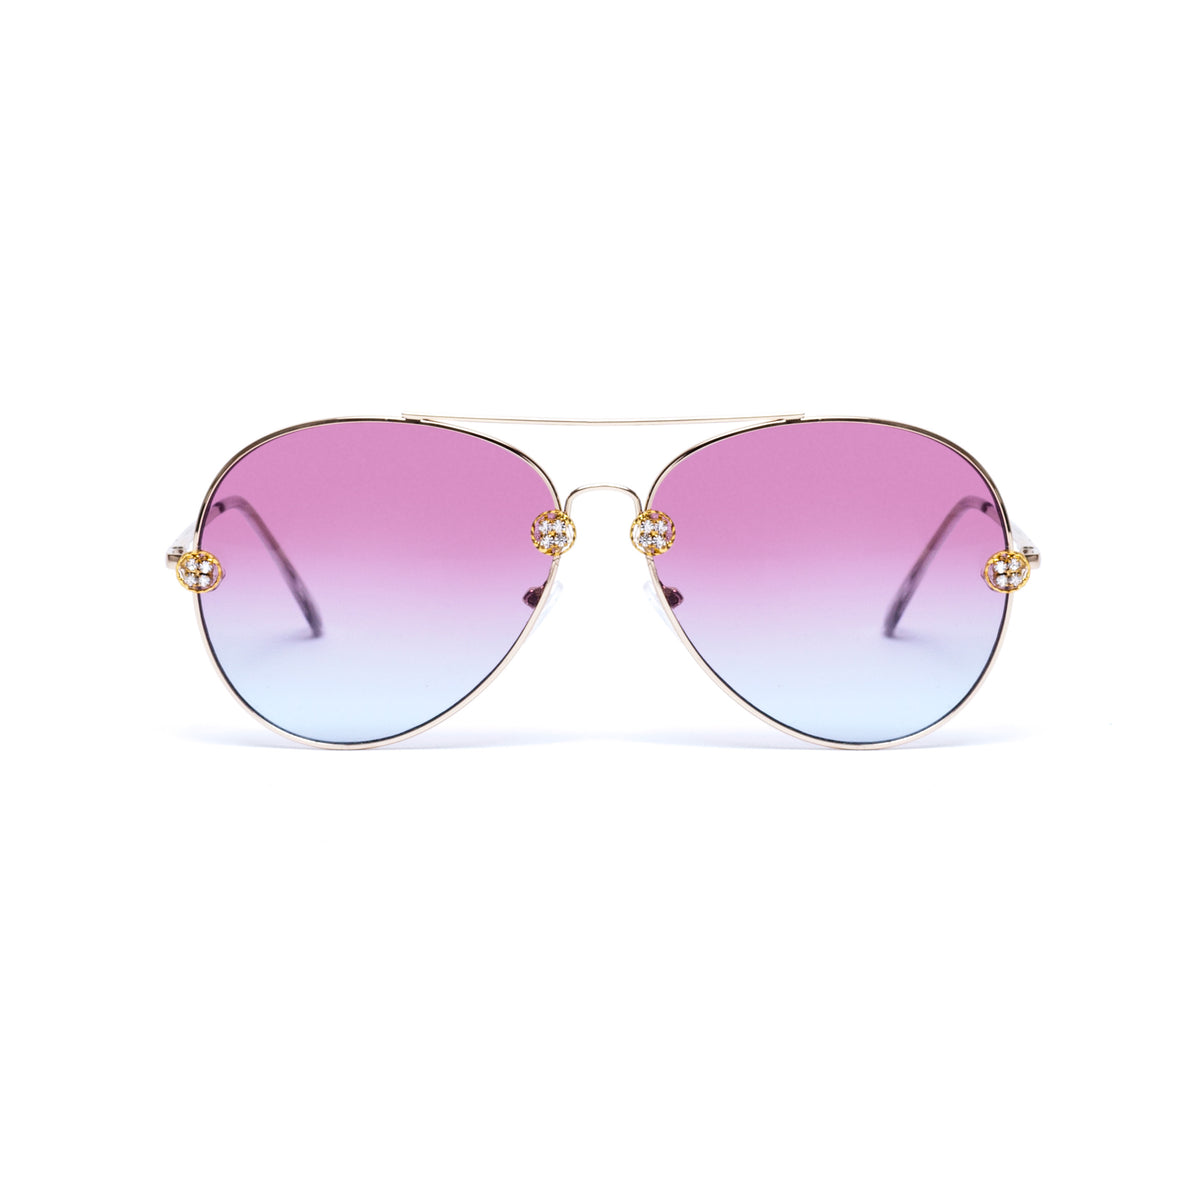 The Perfect Aviator -Sunset Edition  SUNNIES + OPTICS TNEMNRODA- NRODA